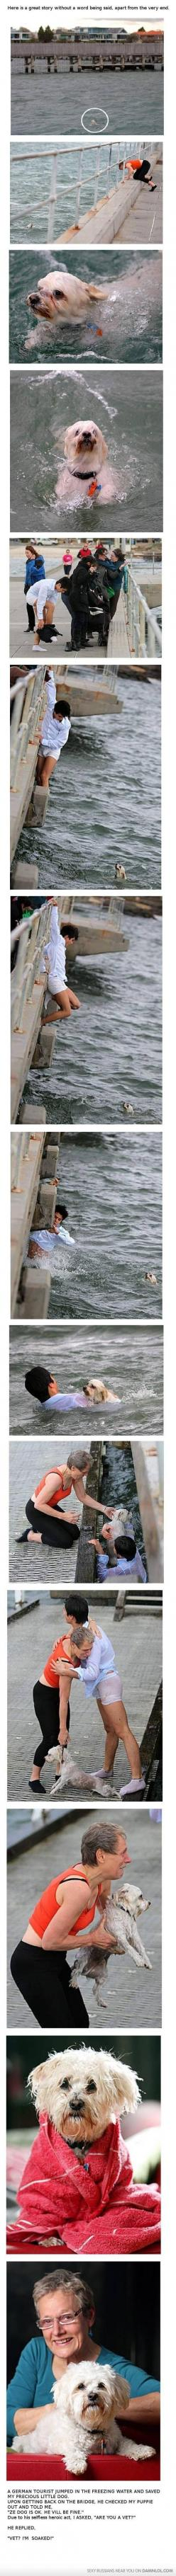 Save the puppy!: Saves Dog, Amazing Stories, Sweet, Hero, Humanity Restored, German, Faith Restored, Faith In Humanity, Acts Of Kindness